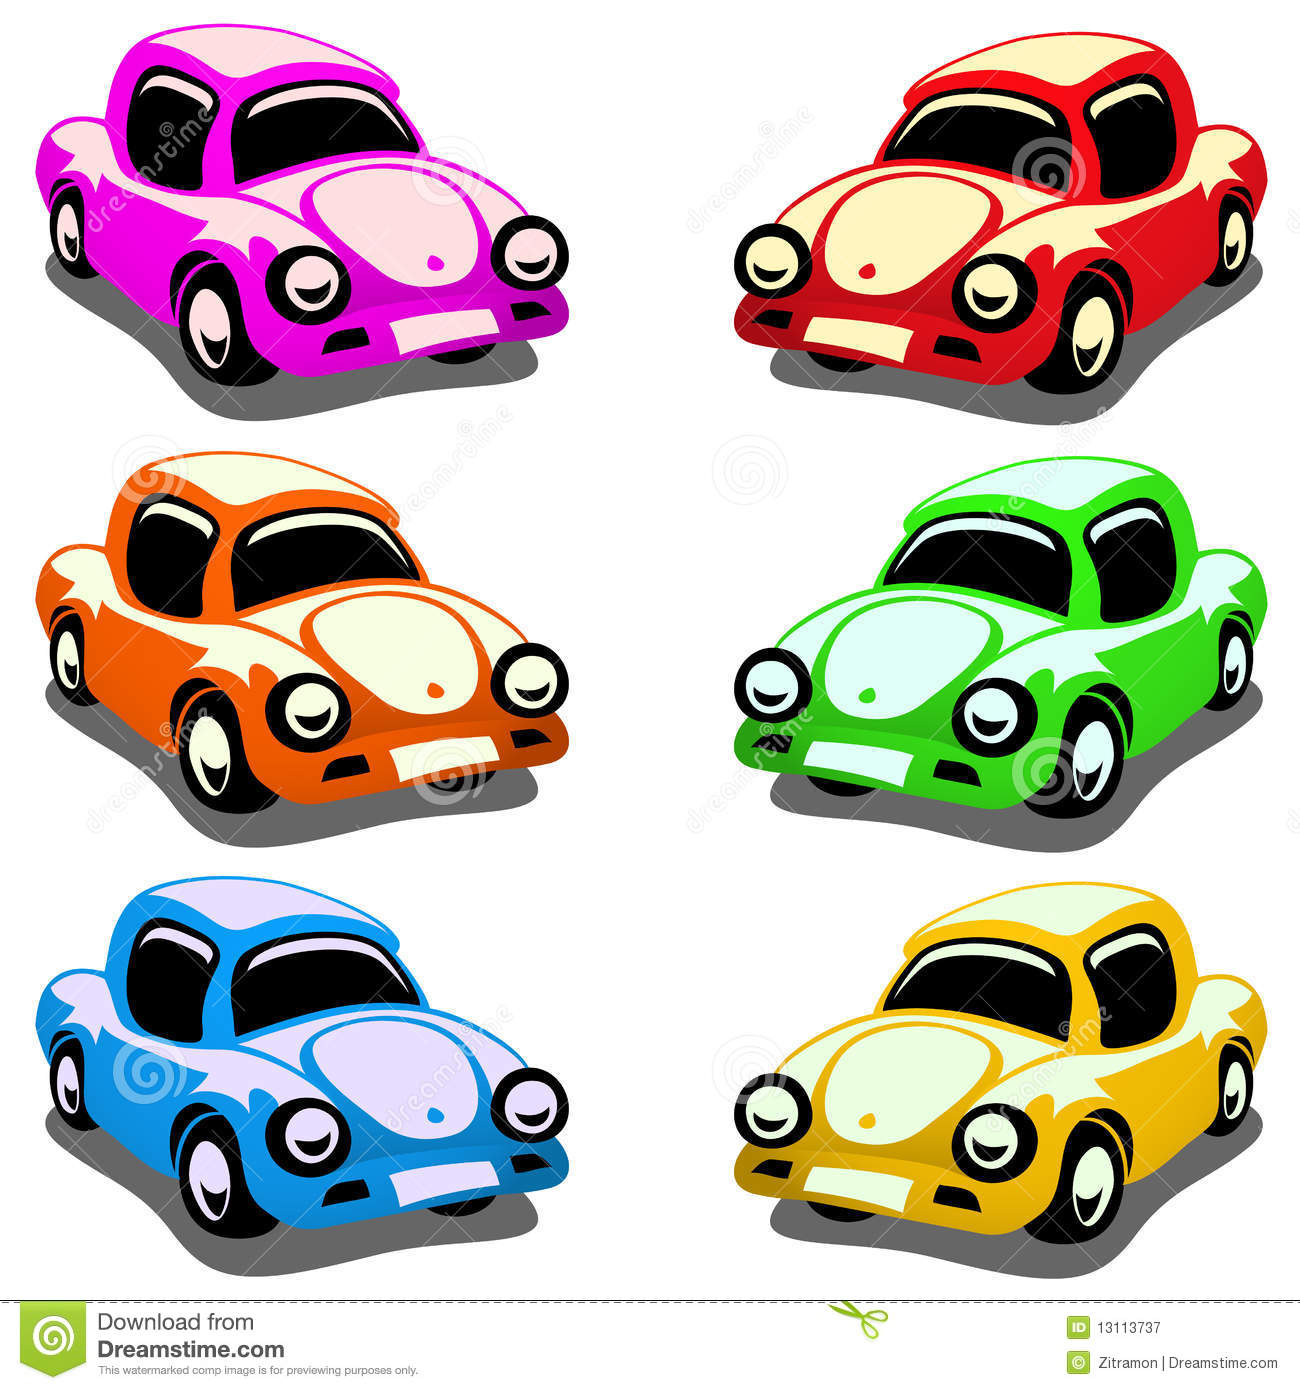 Toy Cars Royalty Free Stock Photography - Image: 13113737